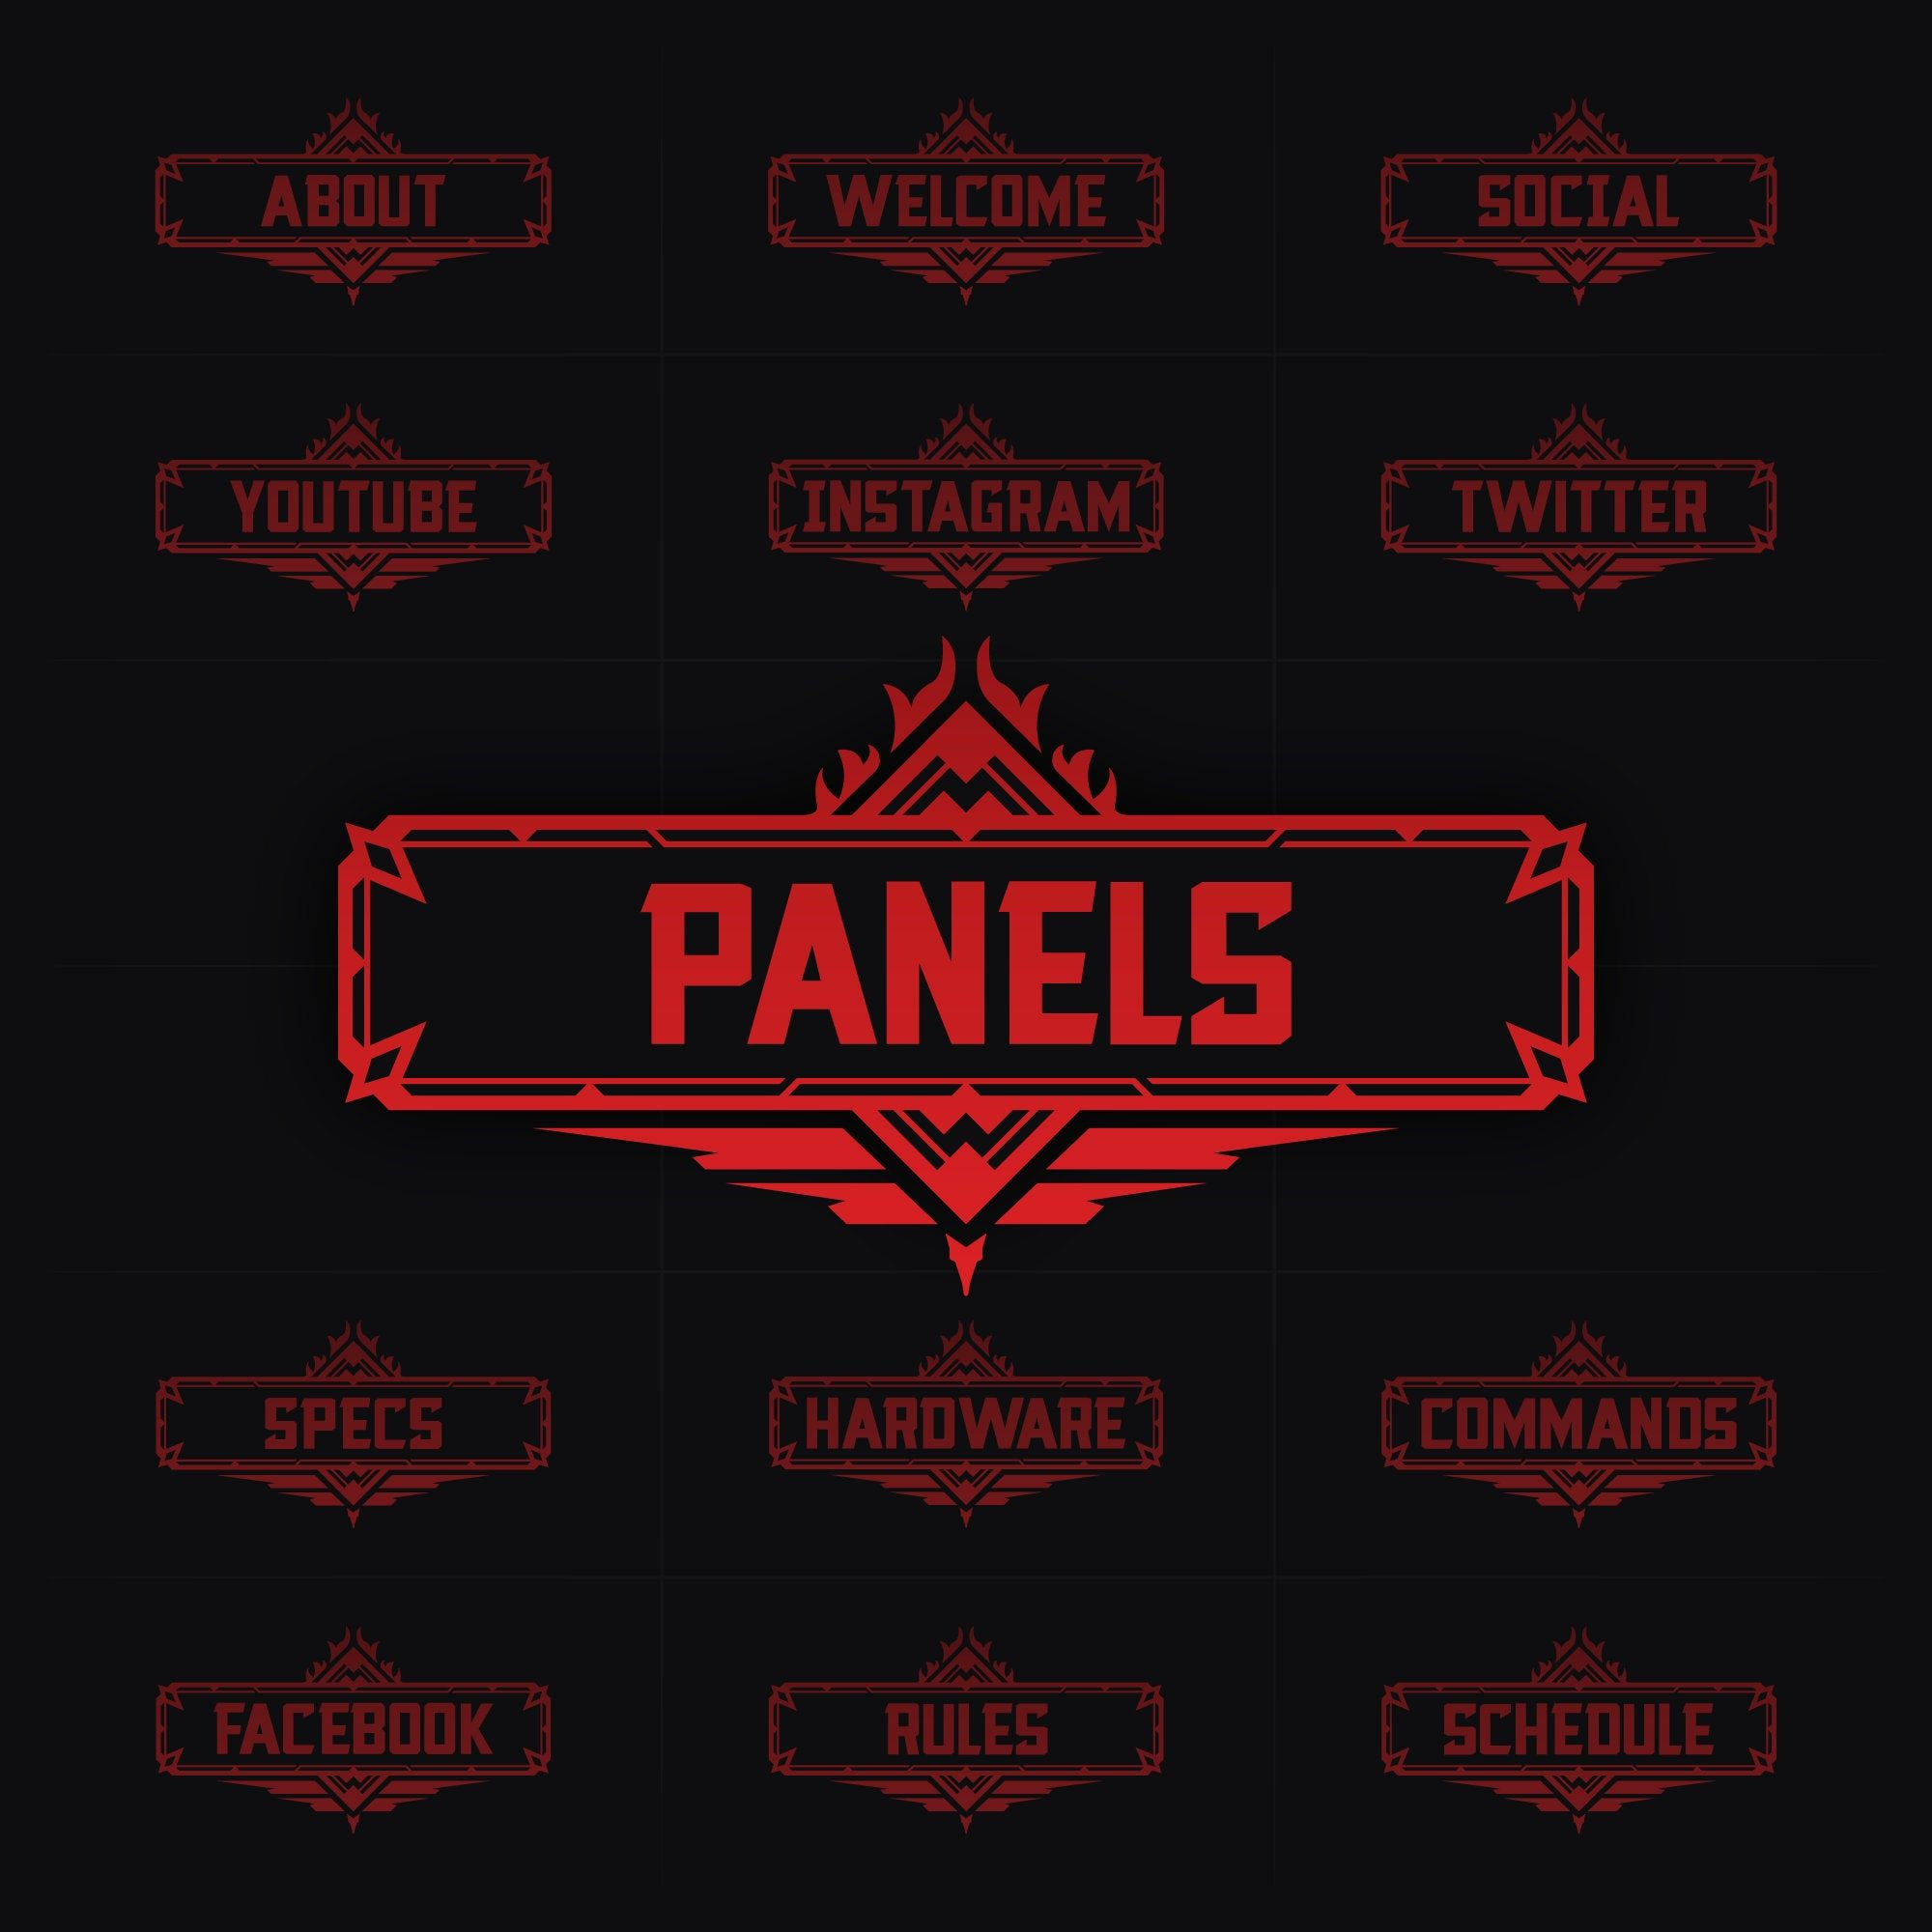 Hunter Apex Legends Theme 18 Twitch Panel Package 5 Color Etsy Twitch Paneling Color Options